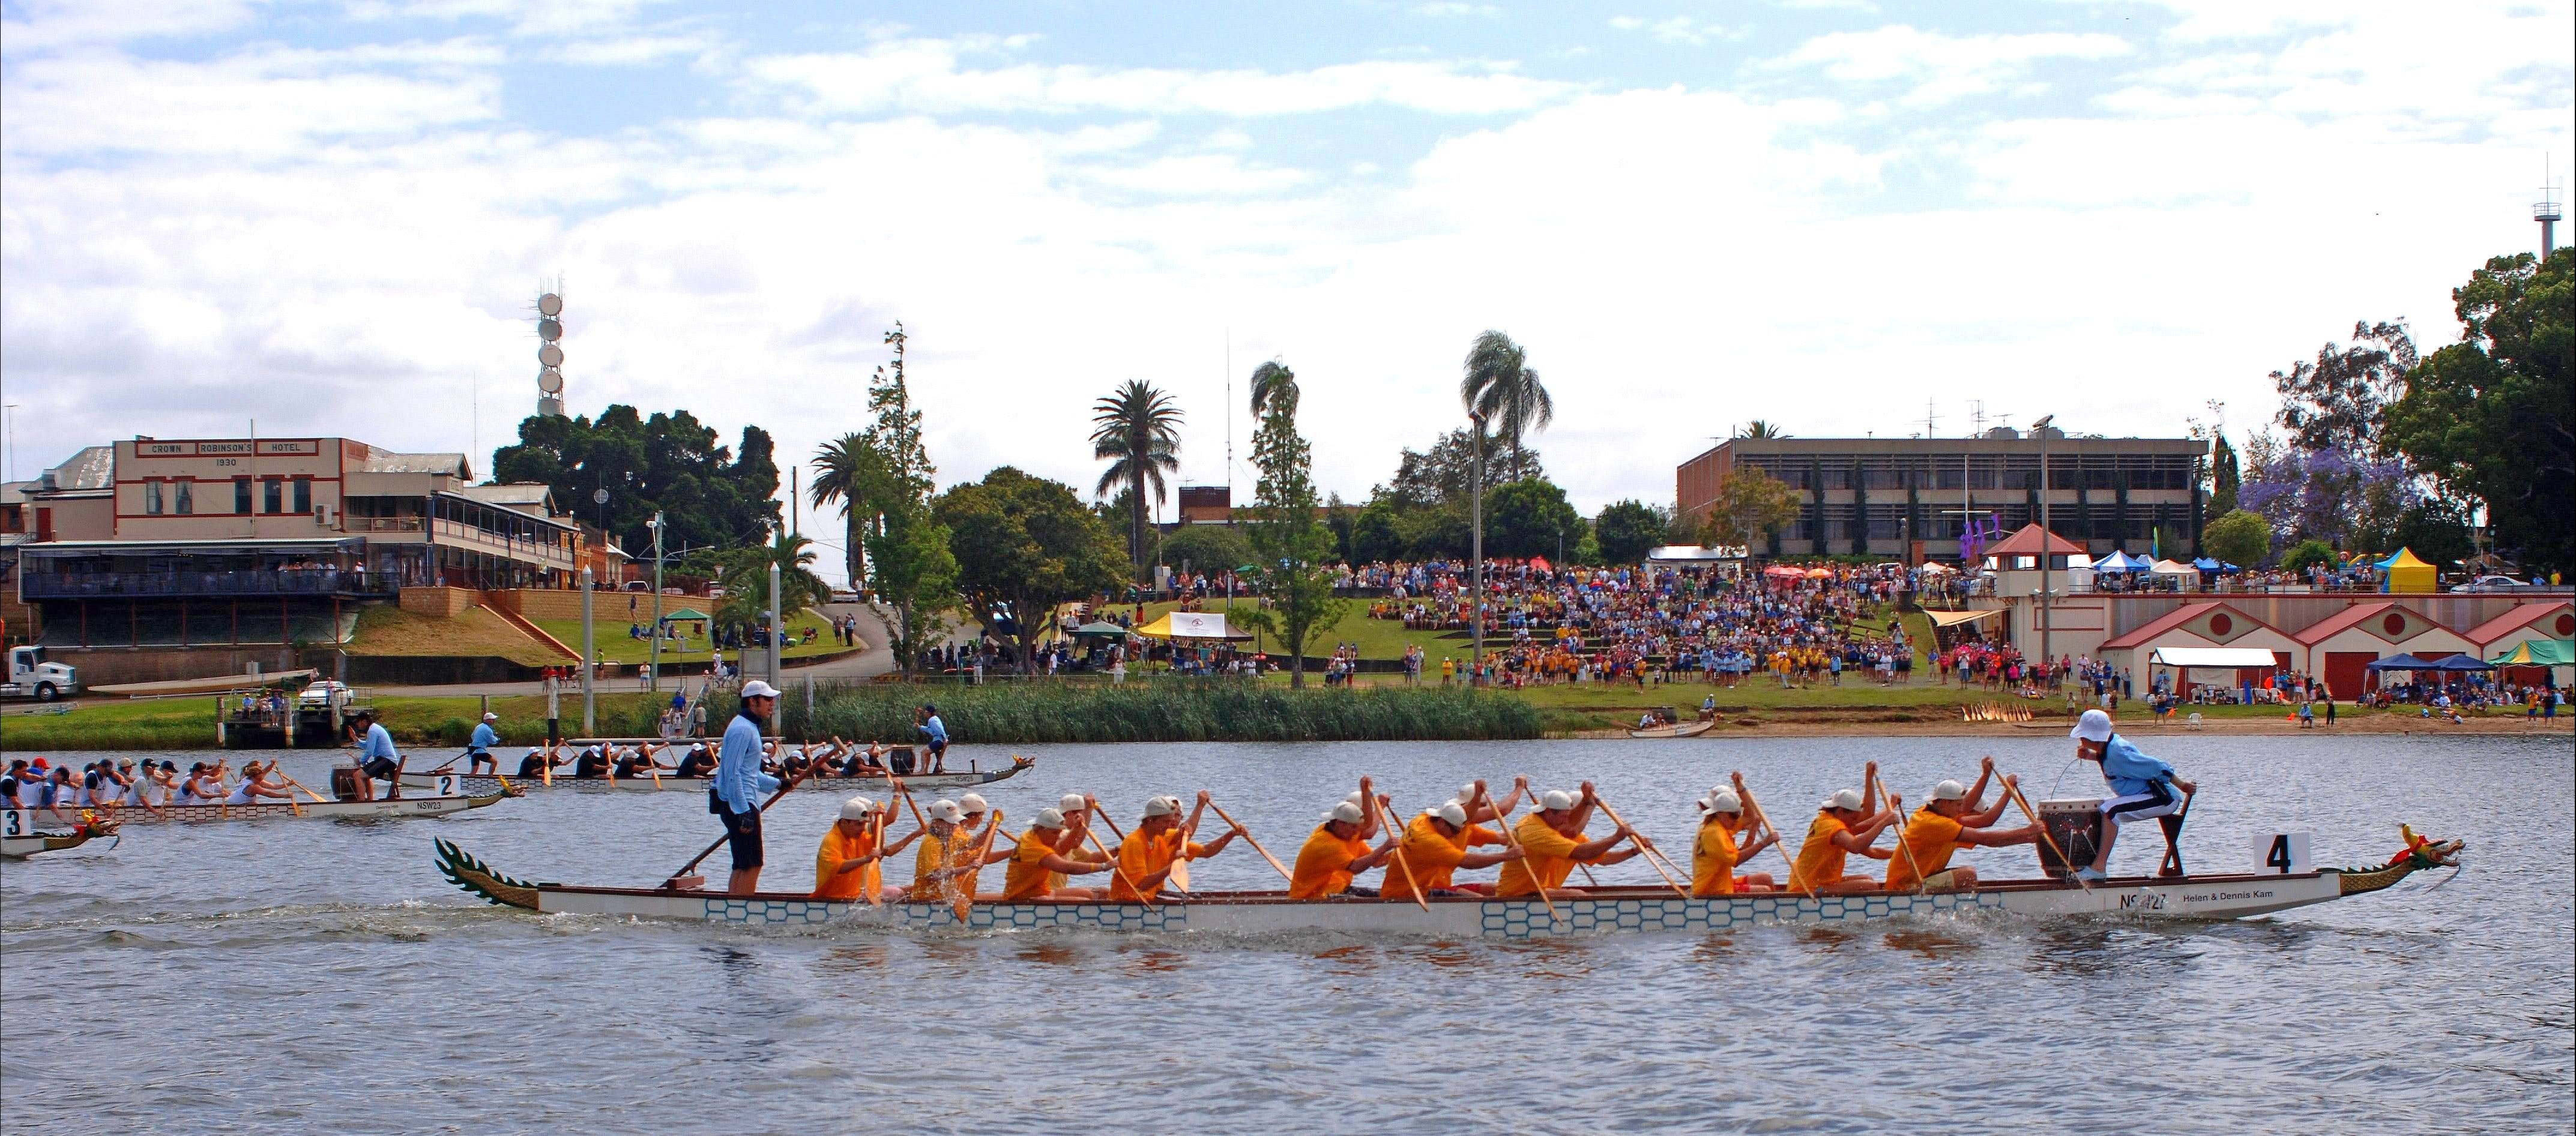 Jacaranda Dragon Boat Races - Accommodation in Surfers Paradise